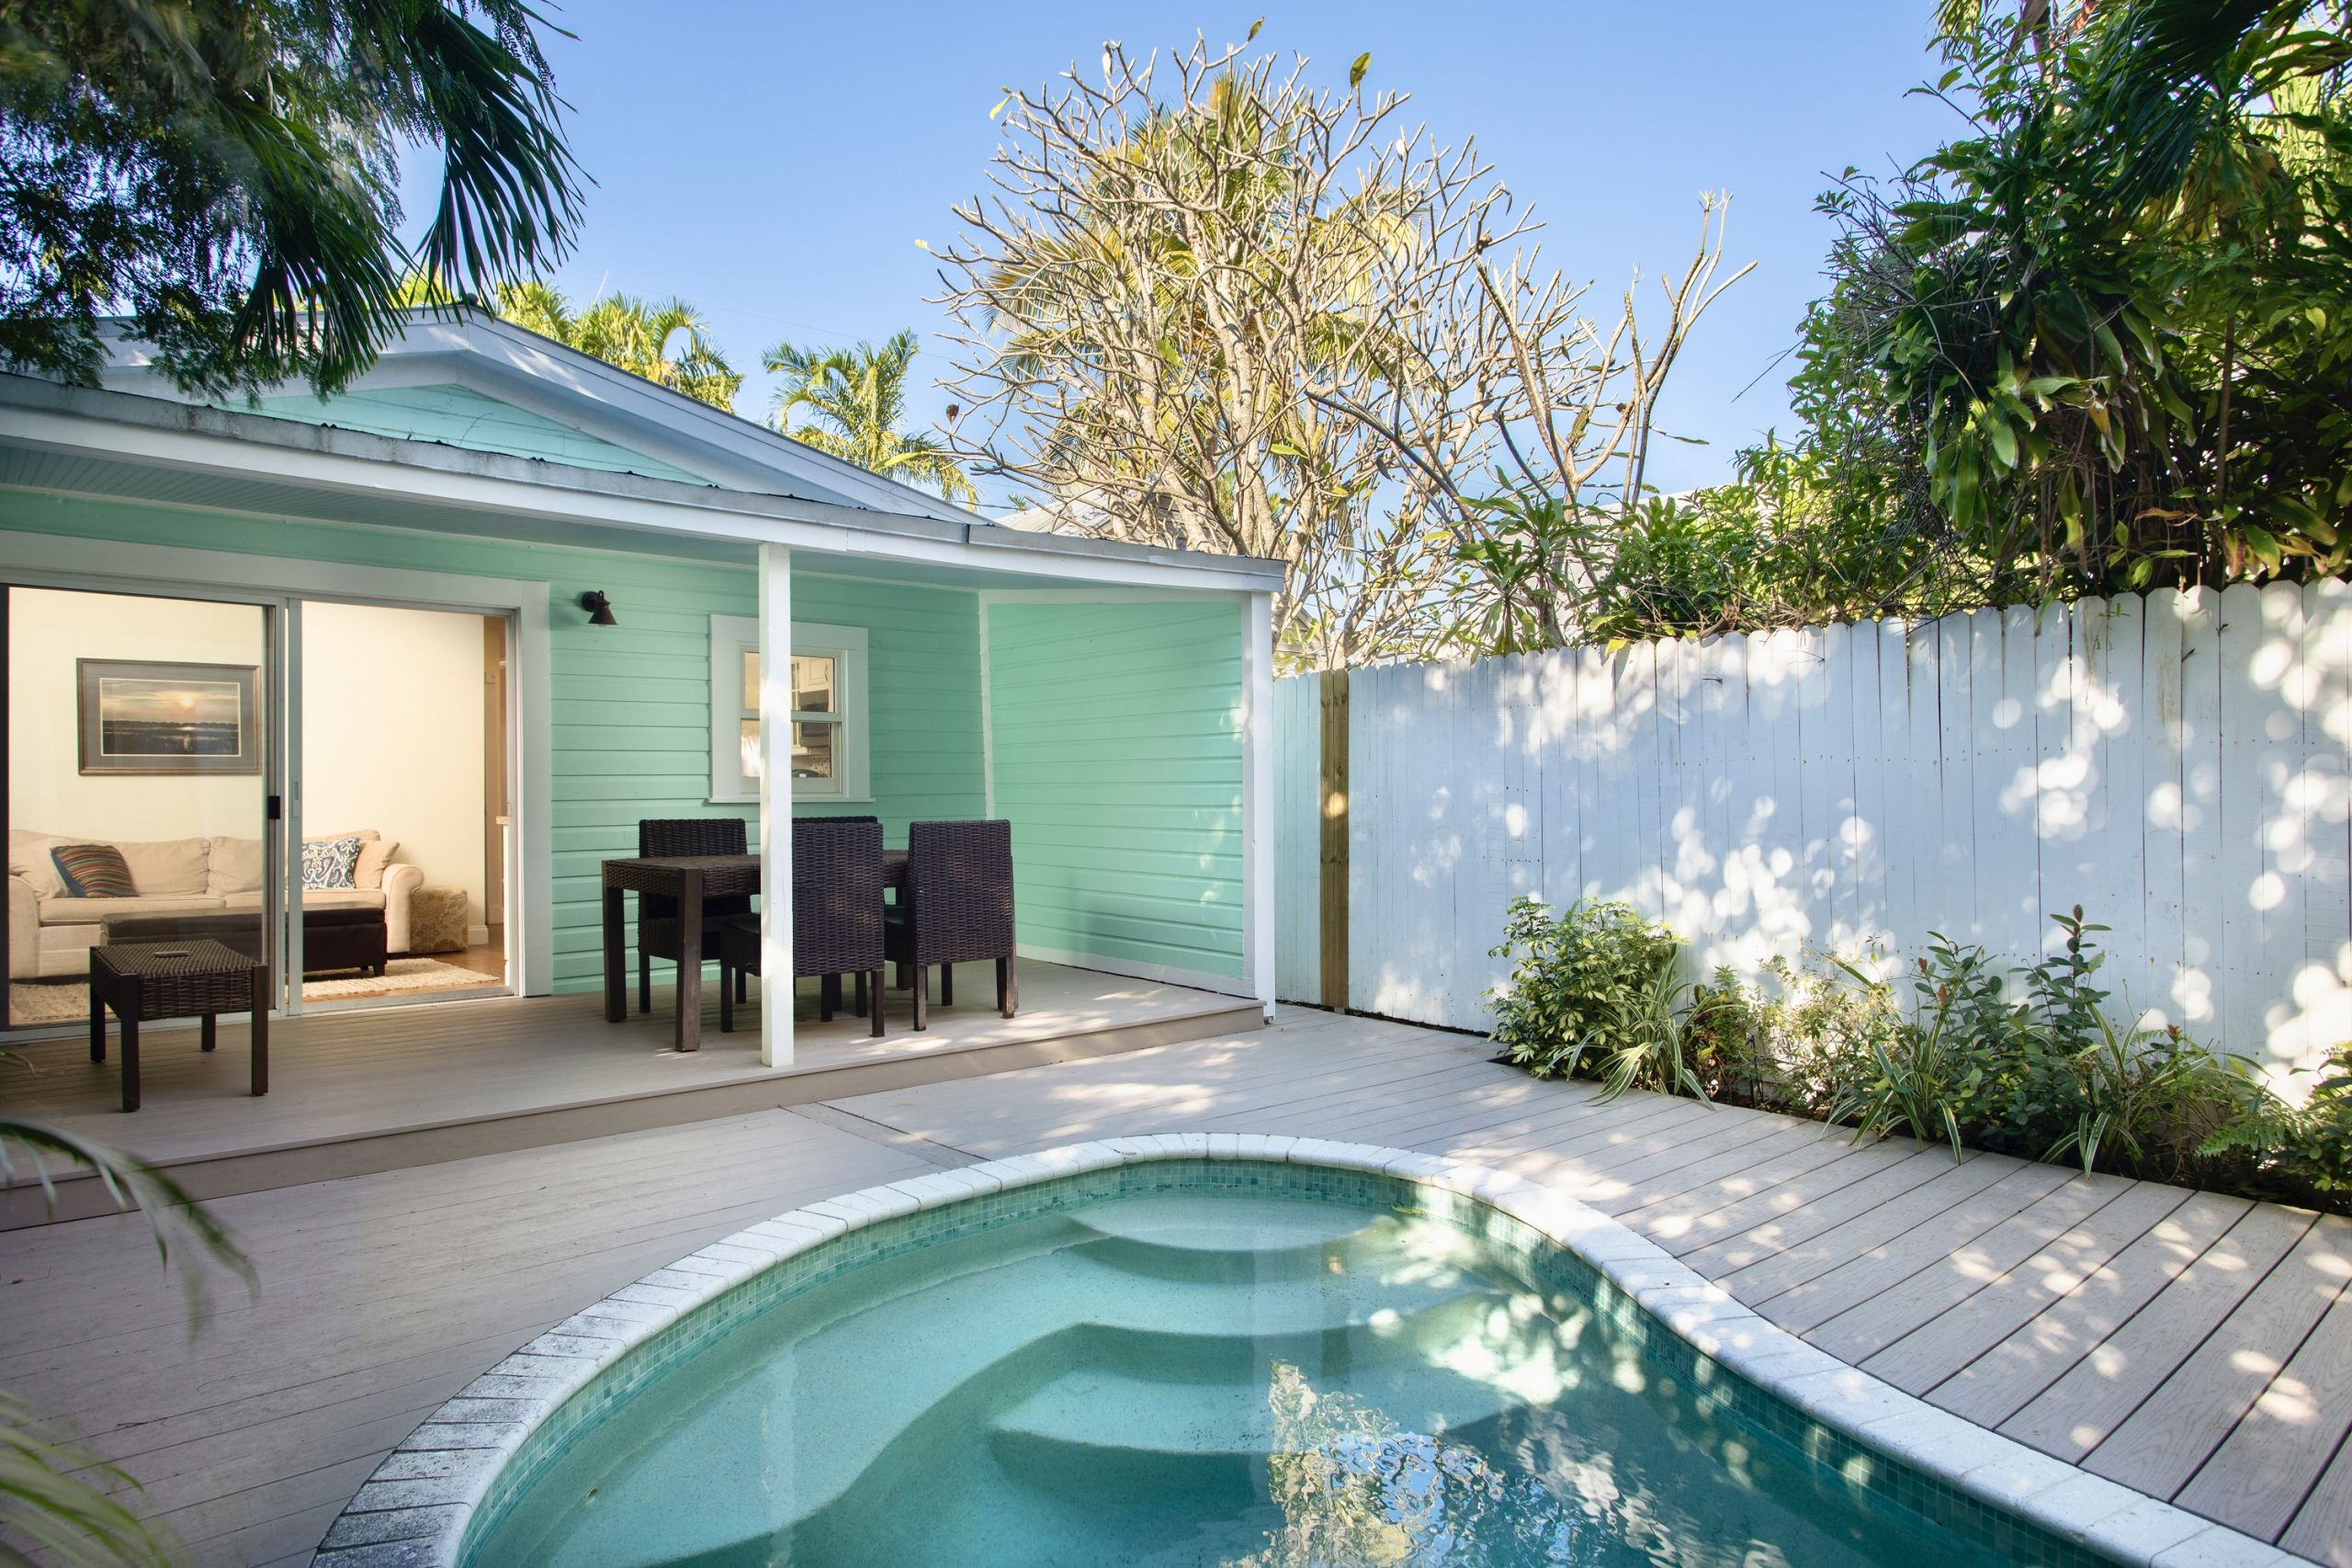 Just Listed In Old Town - Pool & Parking Under $1m